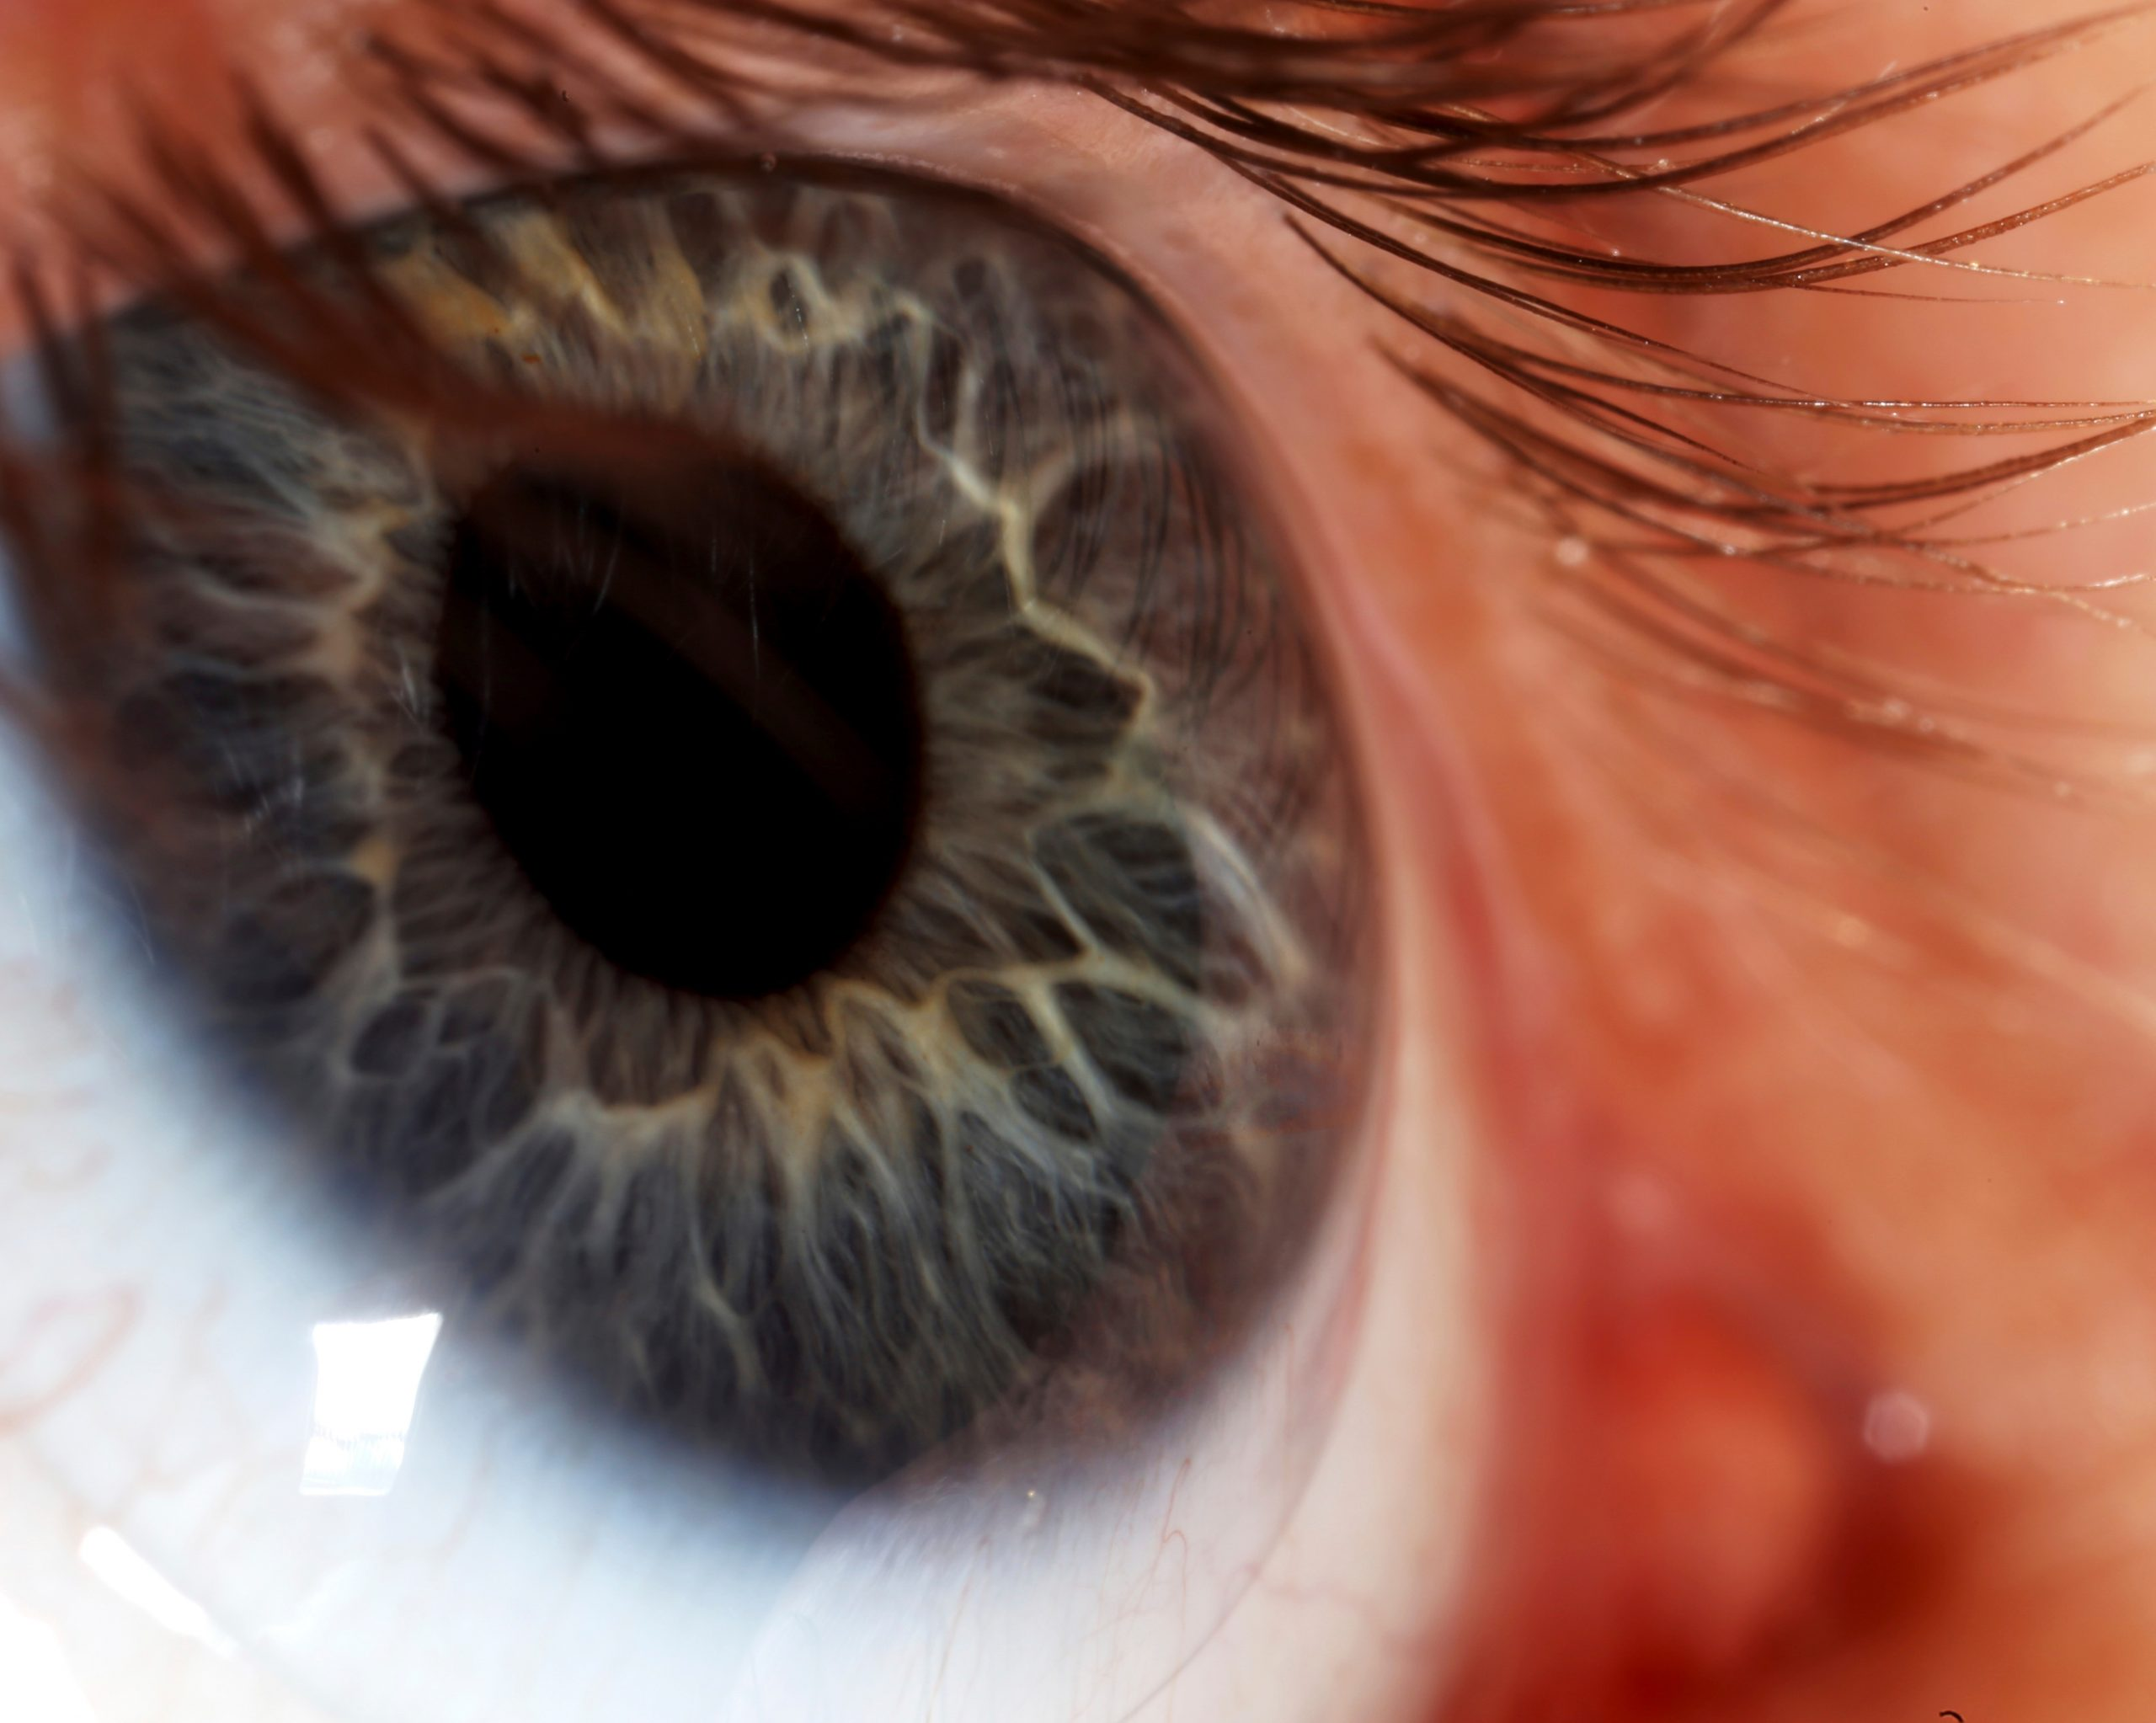 eye wellcome images cc by nc 4 credit macroscopic solutions crop